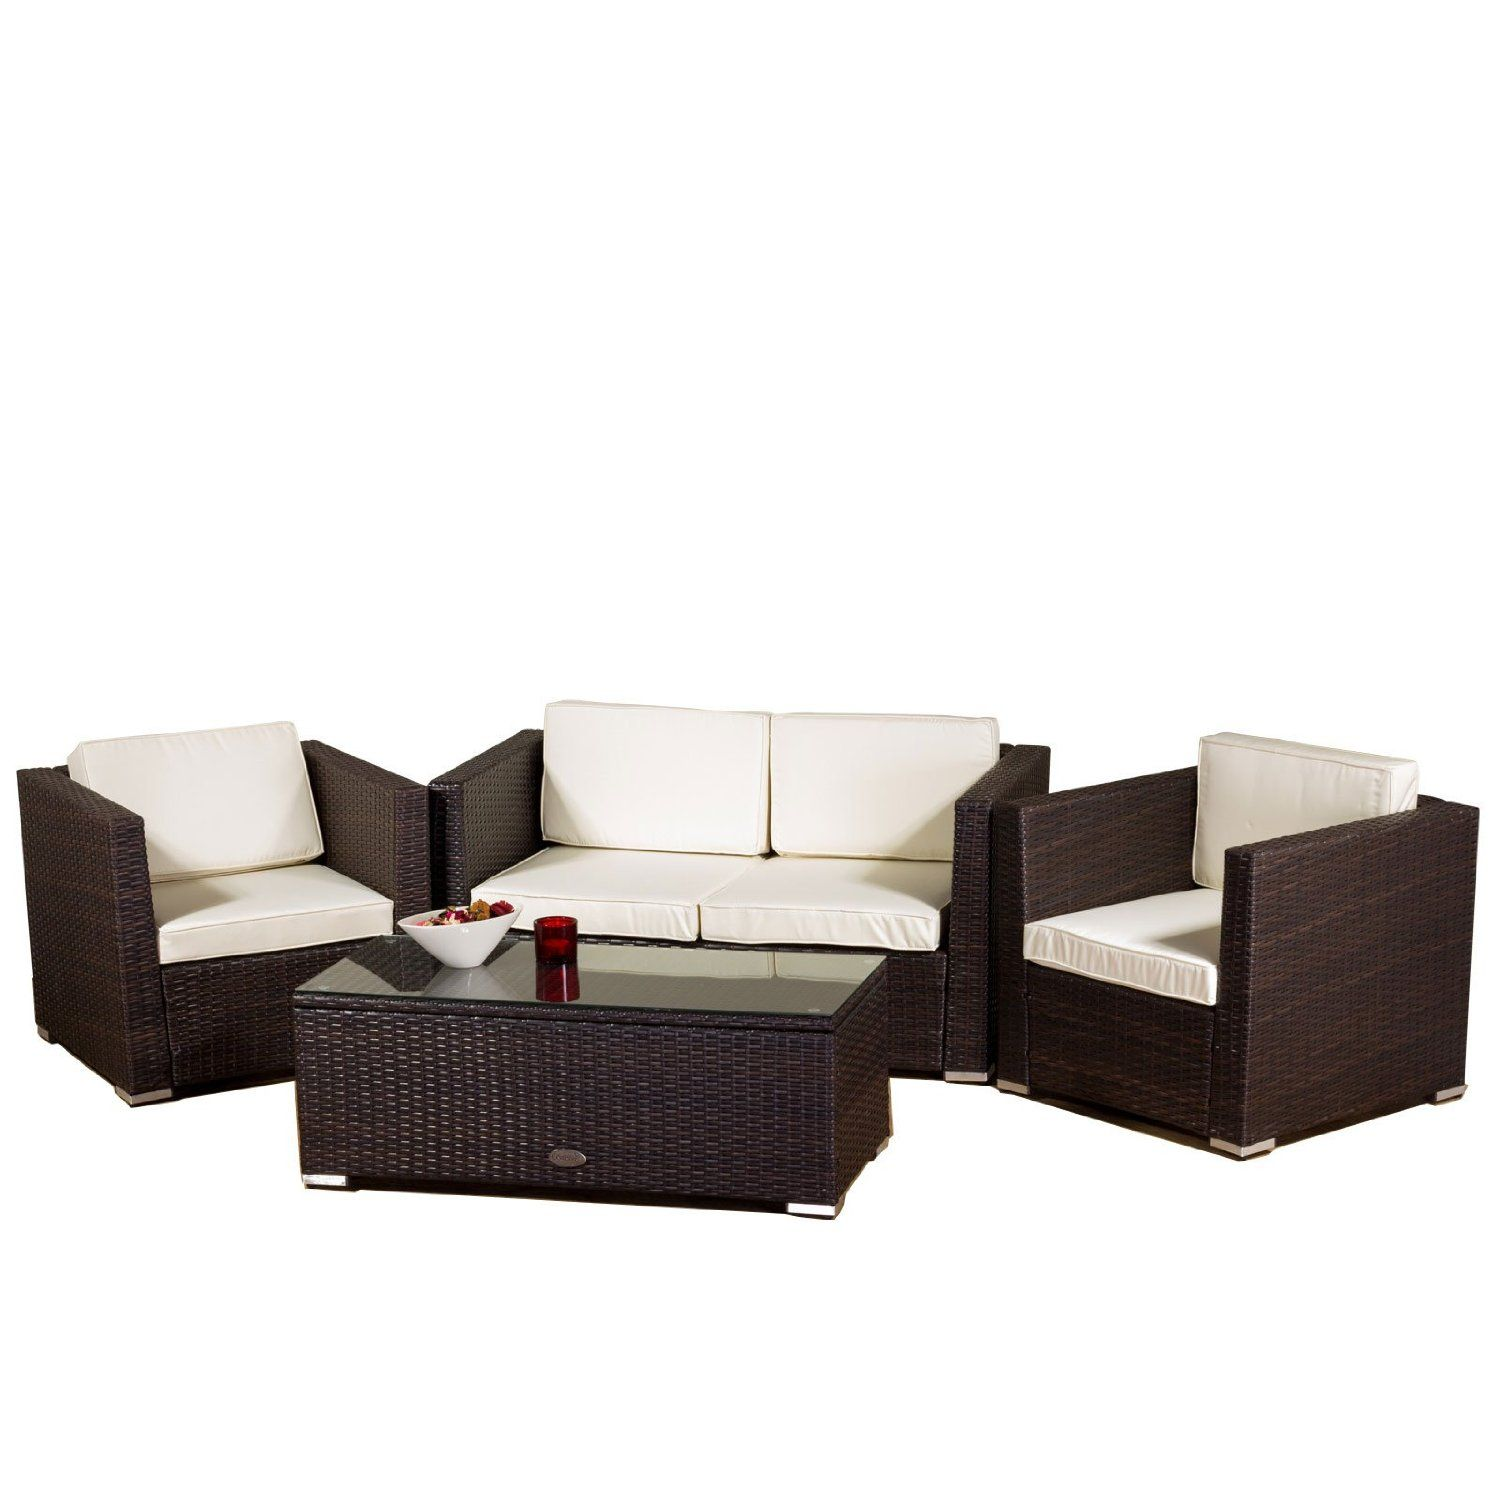 Oseasons New Rattan Oxford 4 Seater Conservatory Sofa Set In Brown Amazon Co Uk Garden Outdoors Conservatory Sofa Patio Furniture Pillows Sofa Set